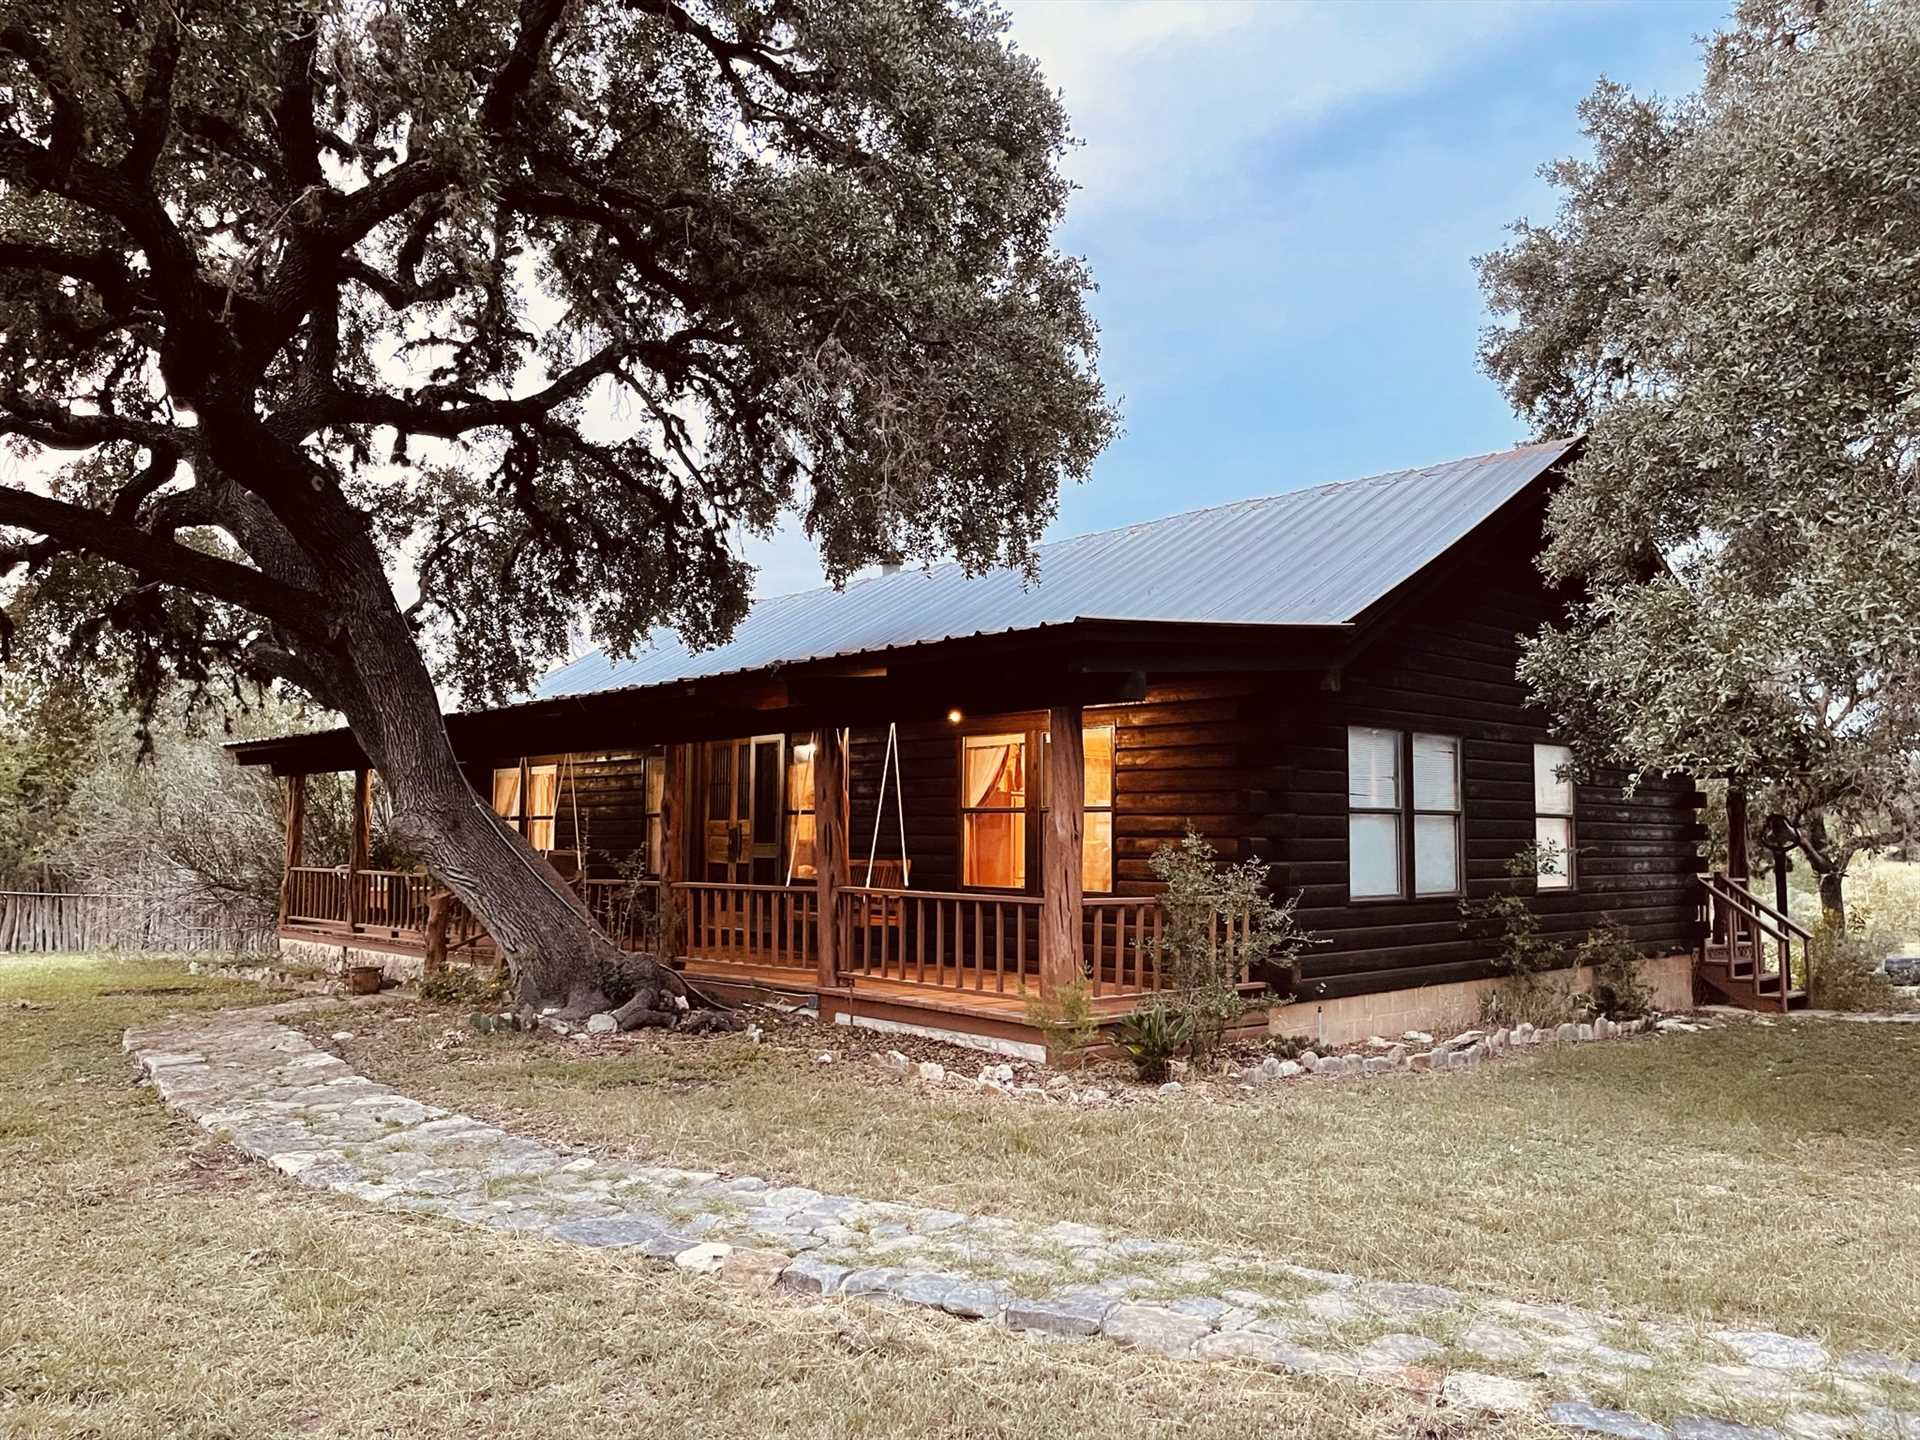 The peaceful shaded deck comes with outdoor lighting and a porch swing, and stretches the entire length of the Lodge. It's a fantastic spot to take in the beauty of the Hill Country!